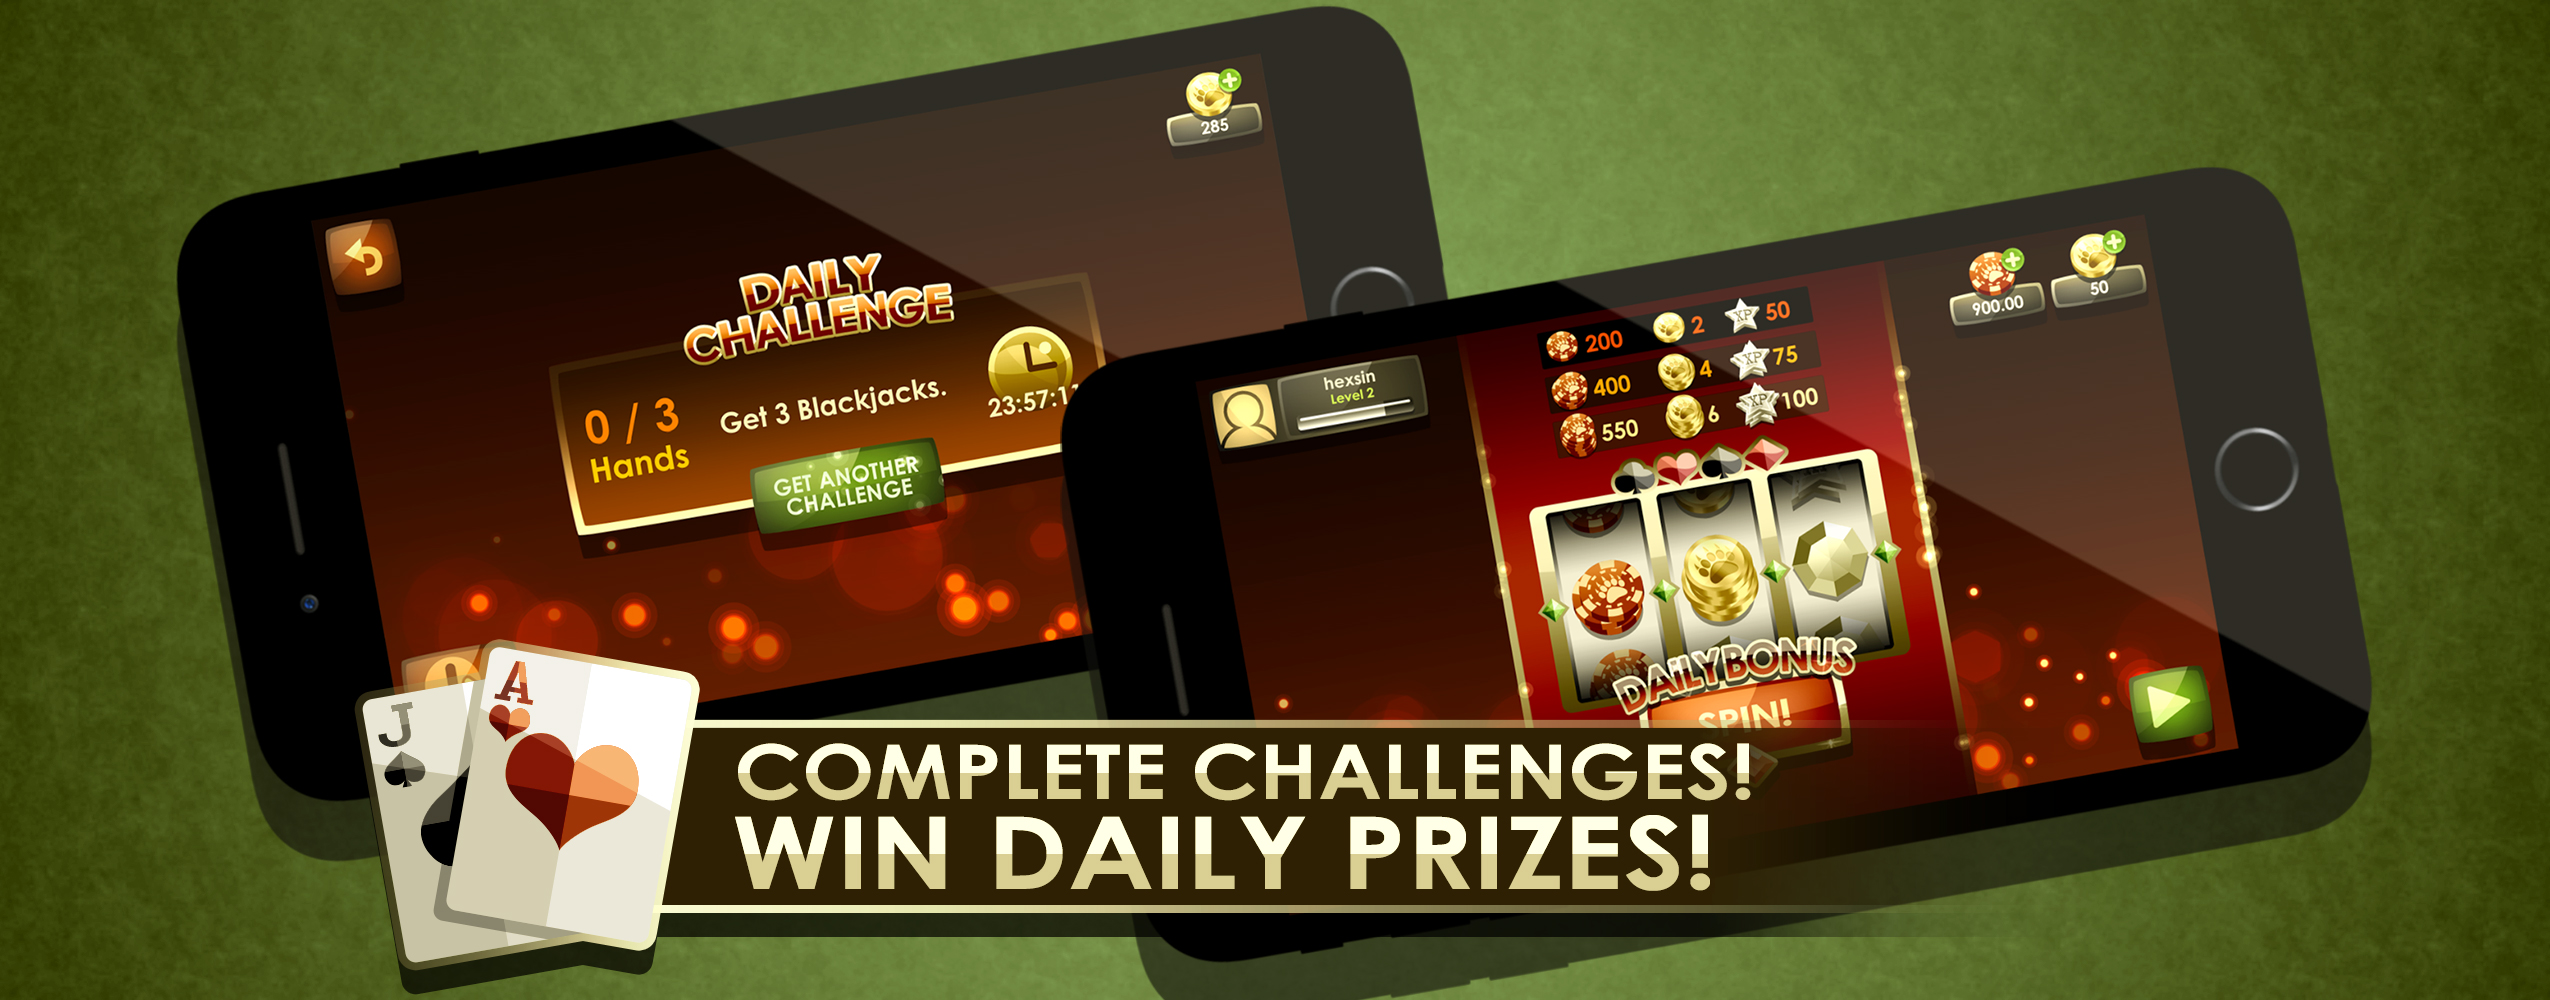 Complete Challenges! Win daily prizes!